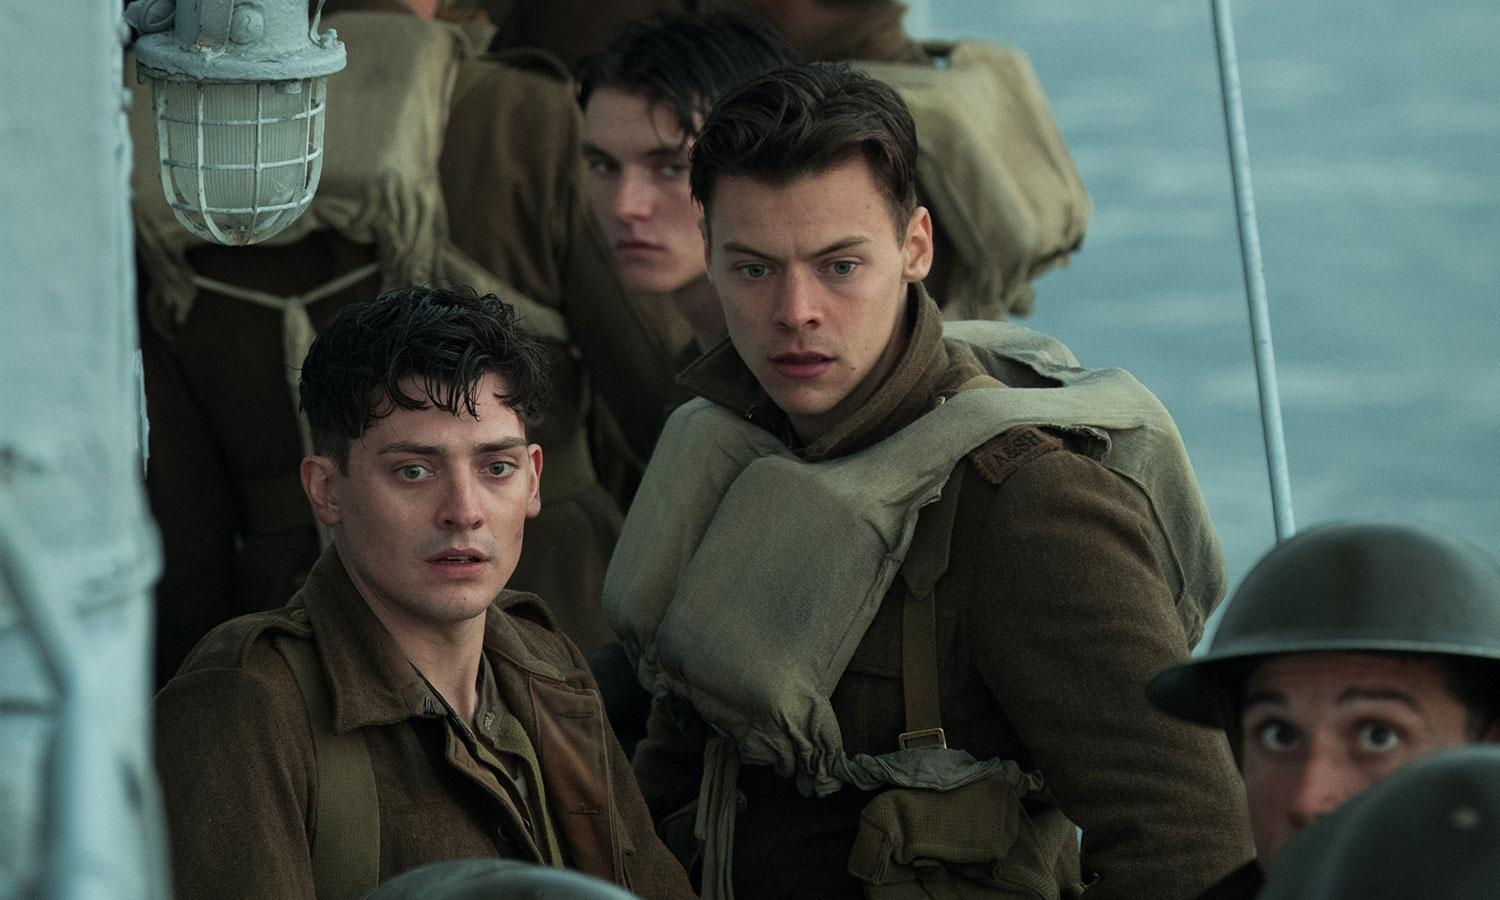 dunkirk harry styles reveals chris nolan s one styling tip video behind the scenes of dunkirk harry styles reveals chris nolan s one styling tip in exclusive video